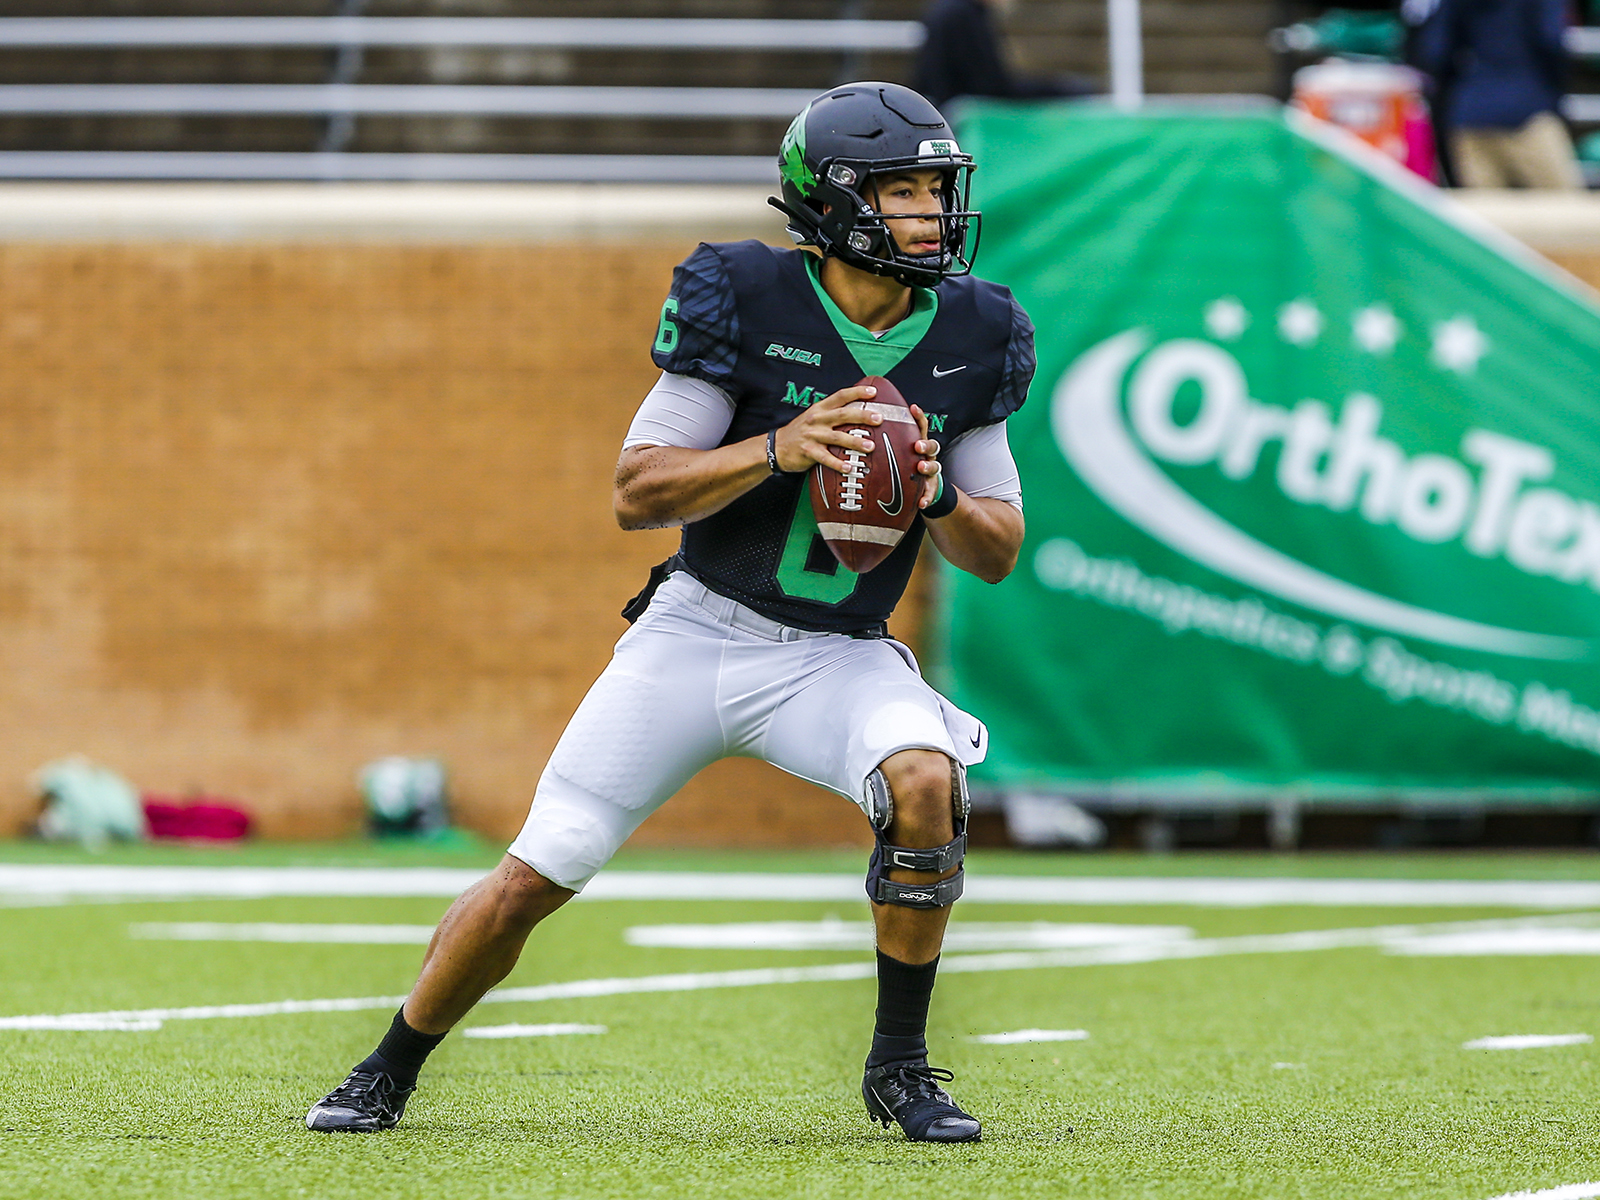 North Texas QB Mason Fine